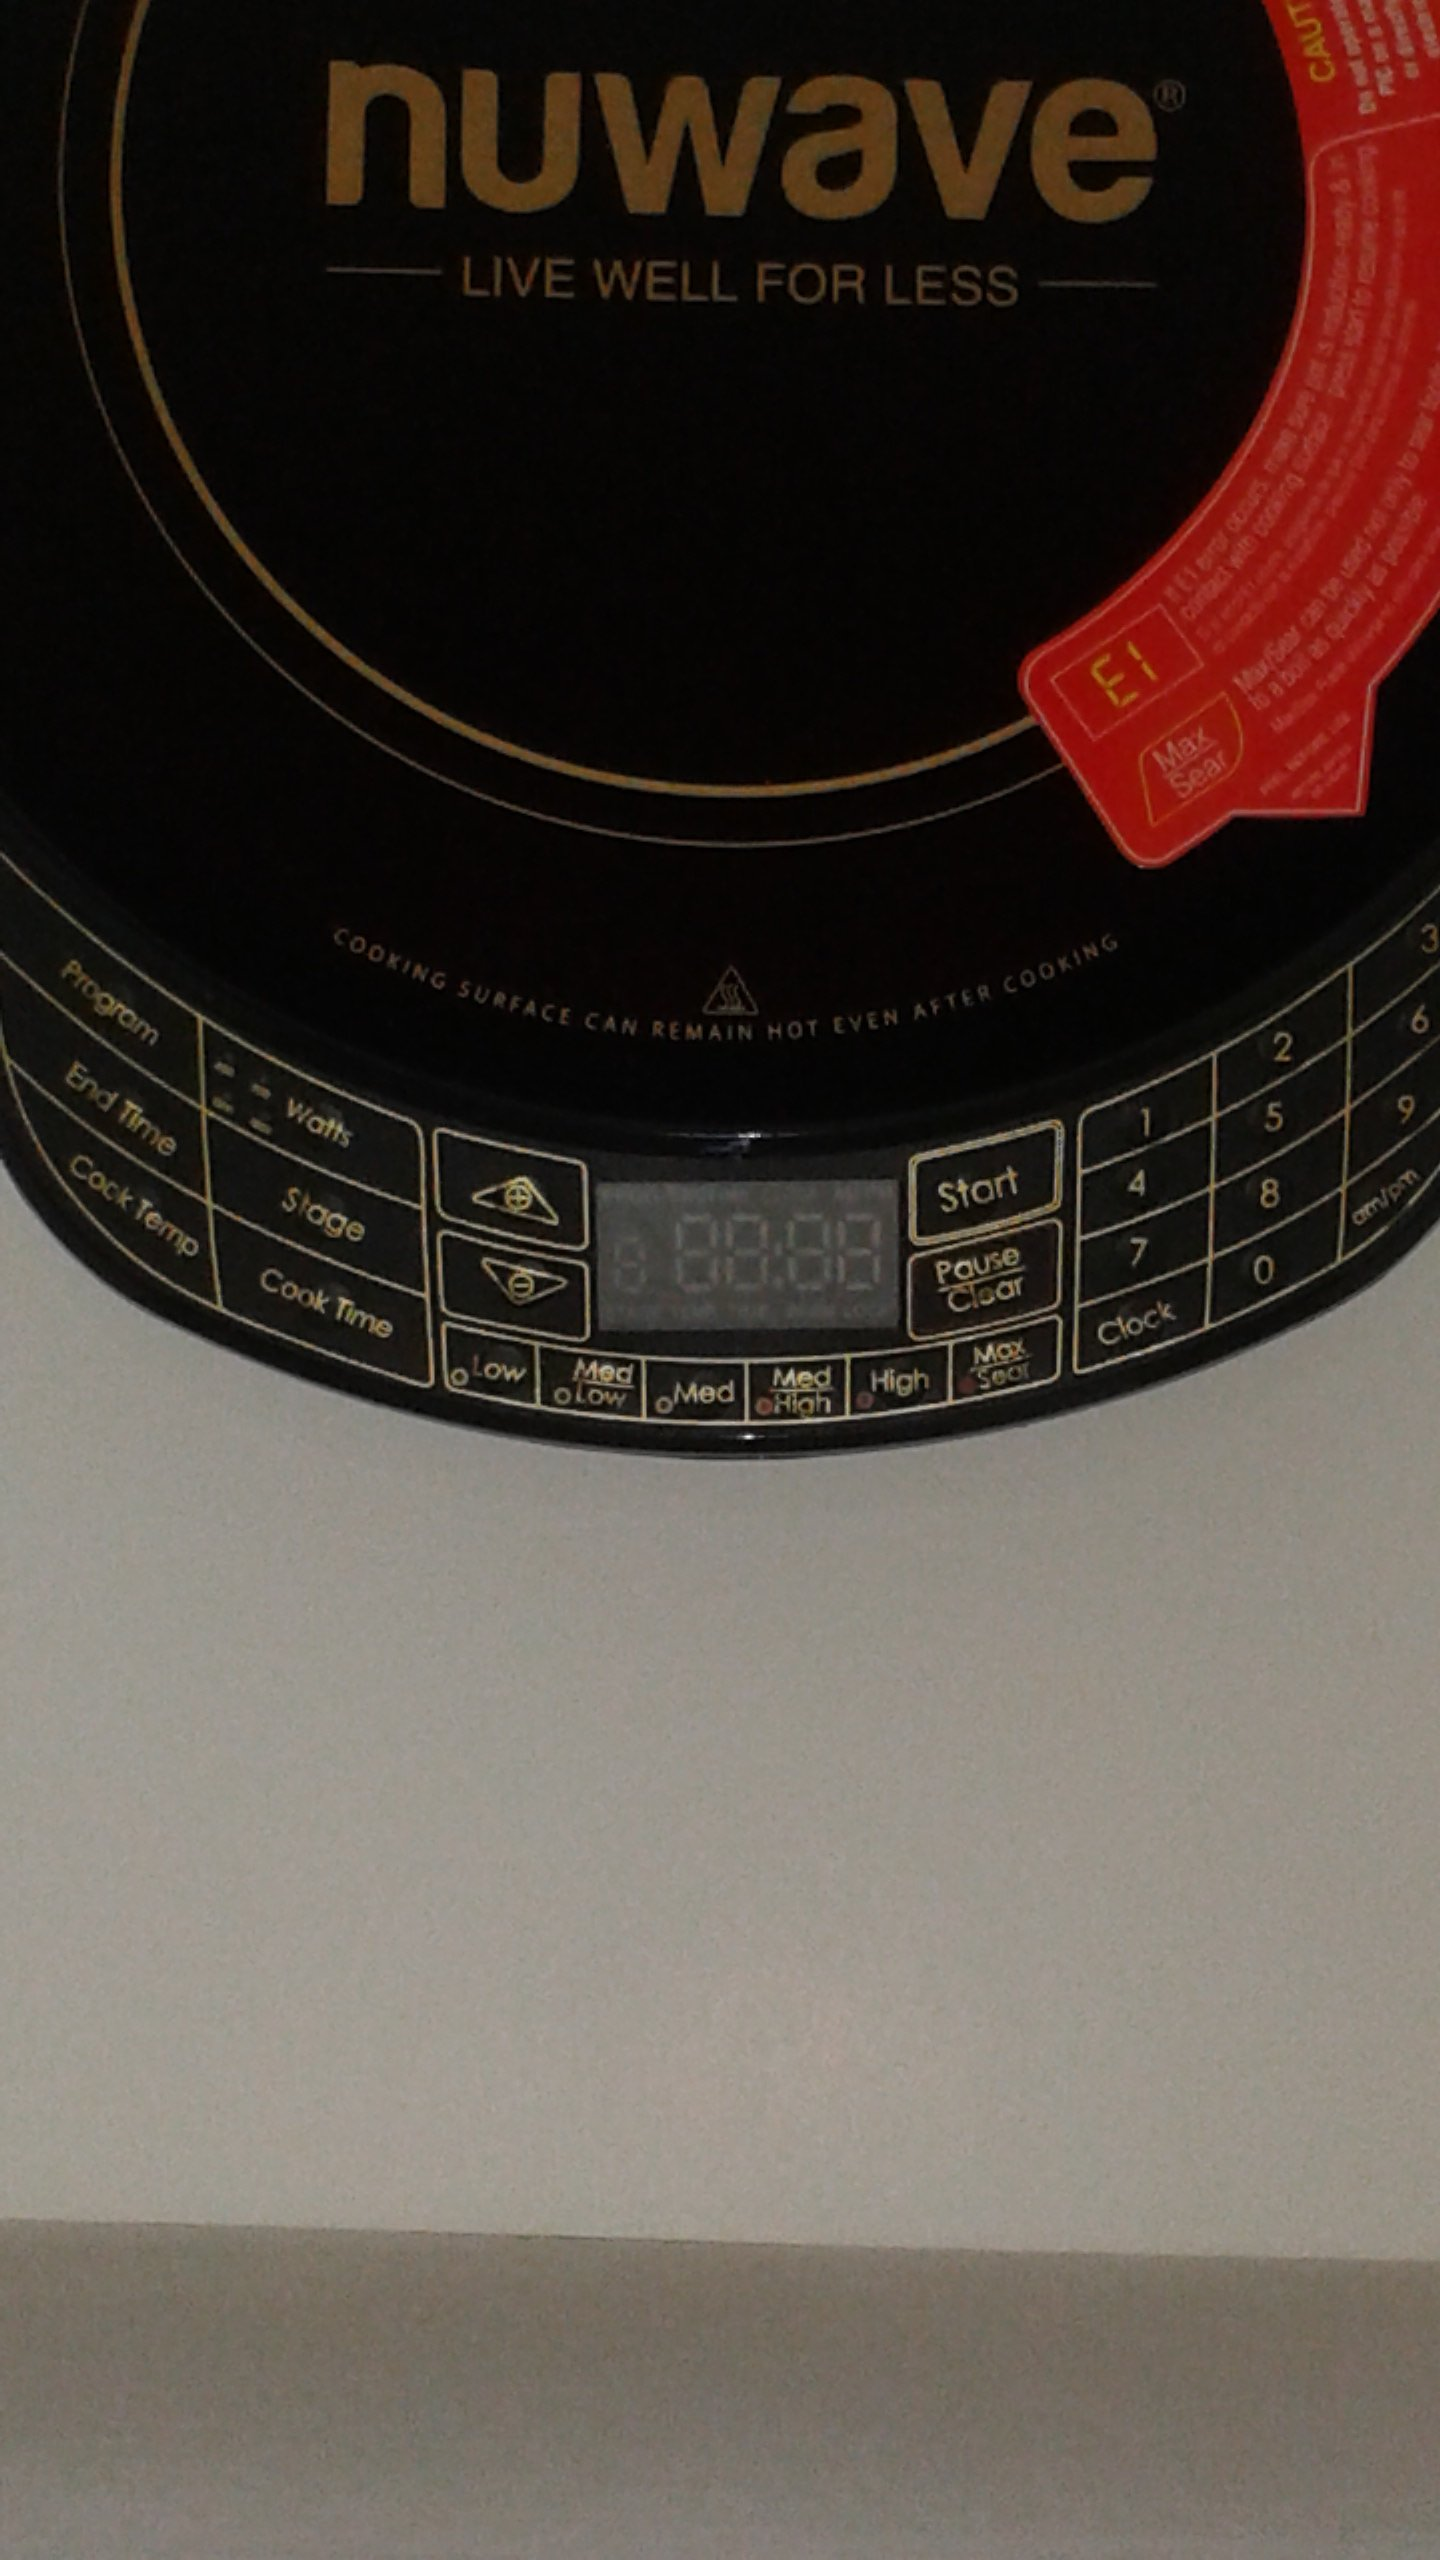 NuWave Platinum 30401 Precision Induction Cooktop, Black with Remote and Advanced Features for 2017 by NuWave (Image #7)